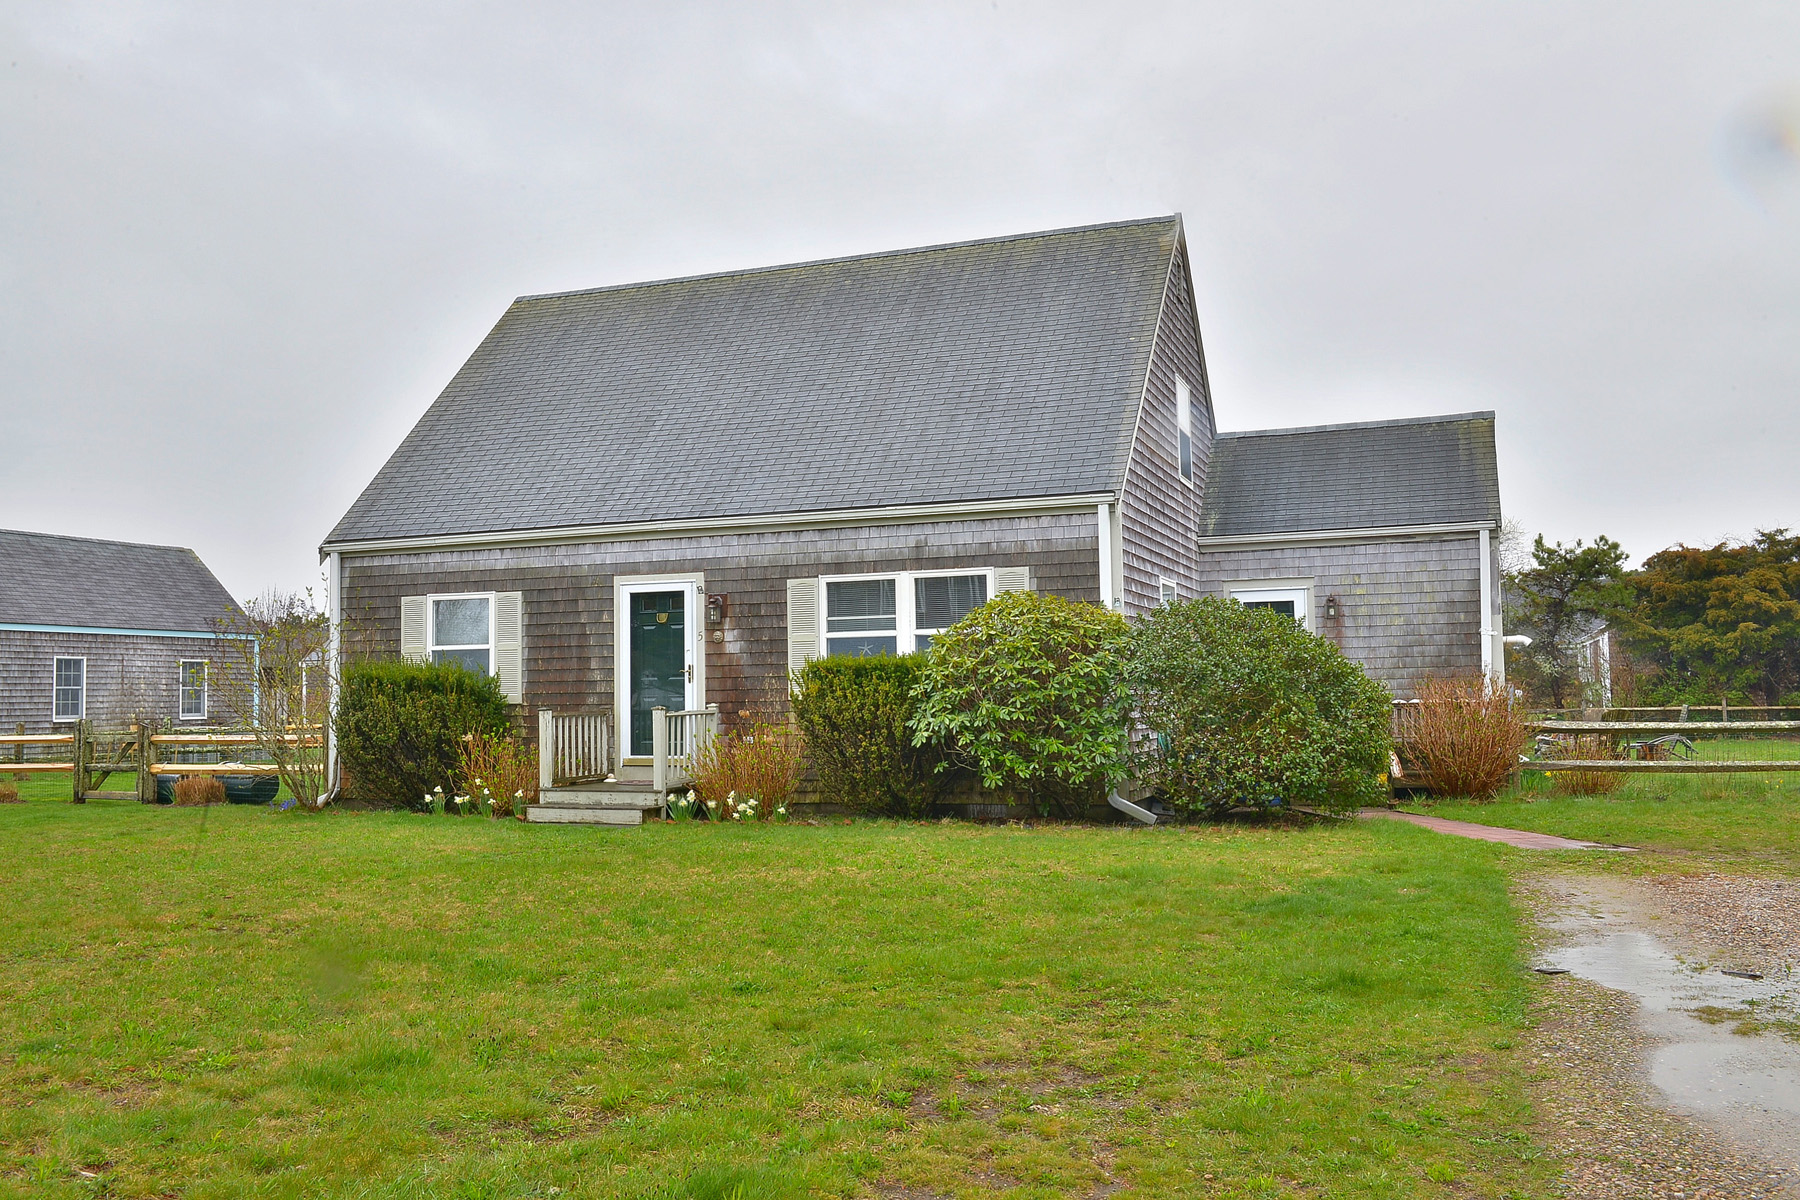 Single Family Home for Sale at Bright and Cheery! Perfect Year Round or Vacation Home! 5A Thurstons Way Nantucket, Massachusetts, 02554 United States